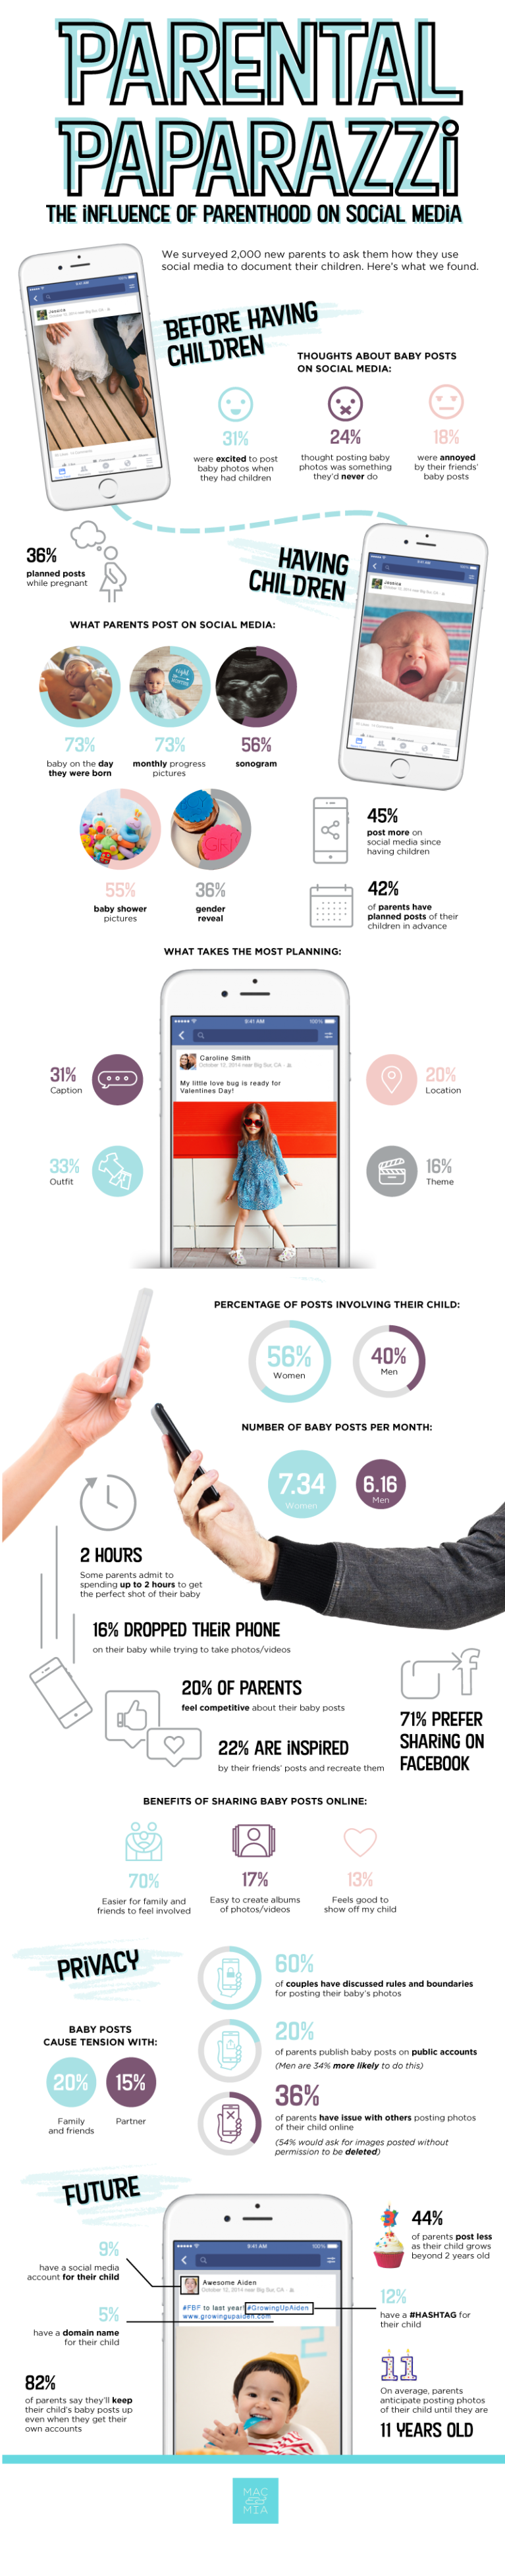 The Influence of Parenthood on Social Media [Infographic] | Social Media Today